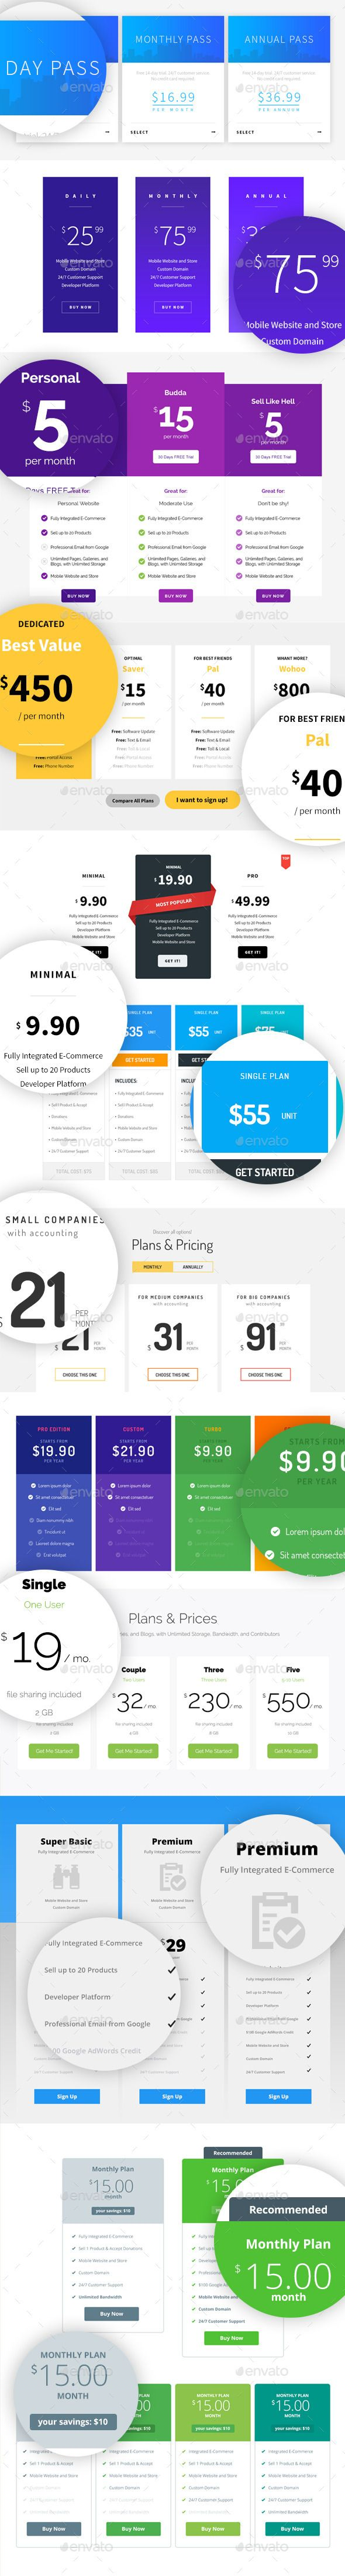 12 Pricing Tables Layouts Template PSD. Download here: http://graphicriver.net/item/12-pricing-tables-layouts/12556378?ref=ksioks